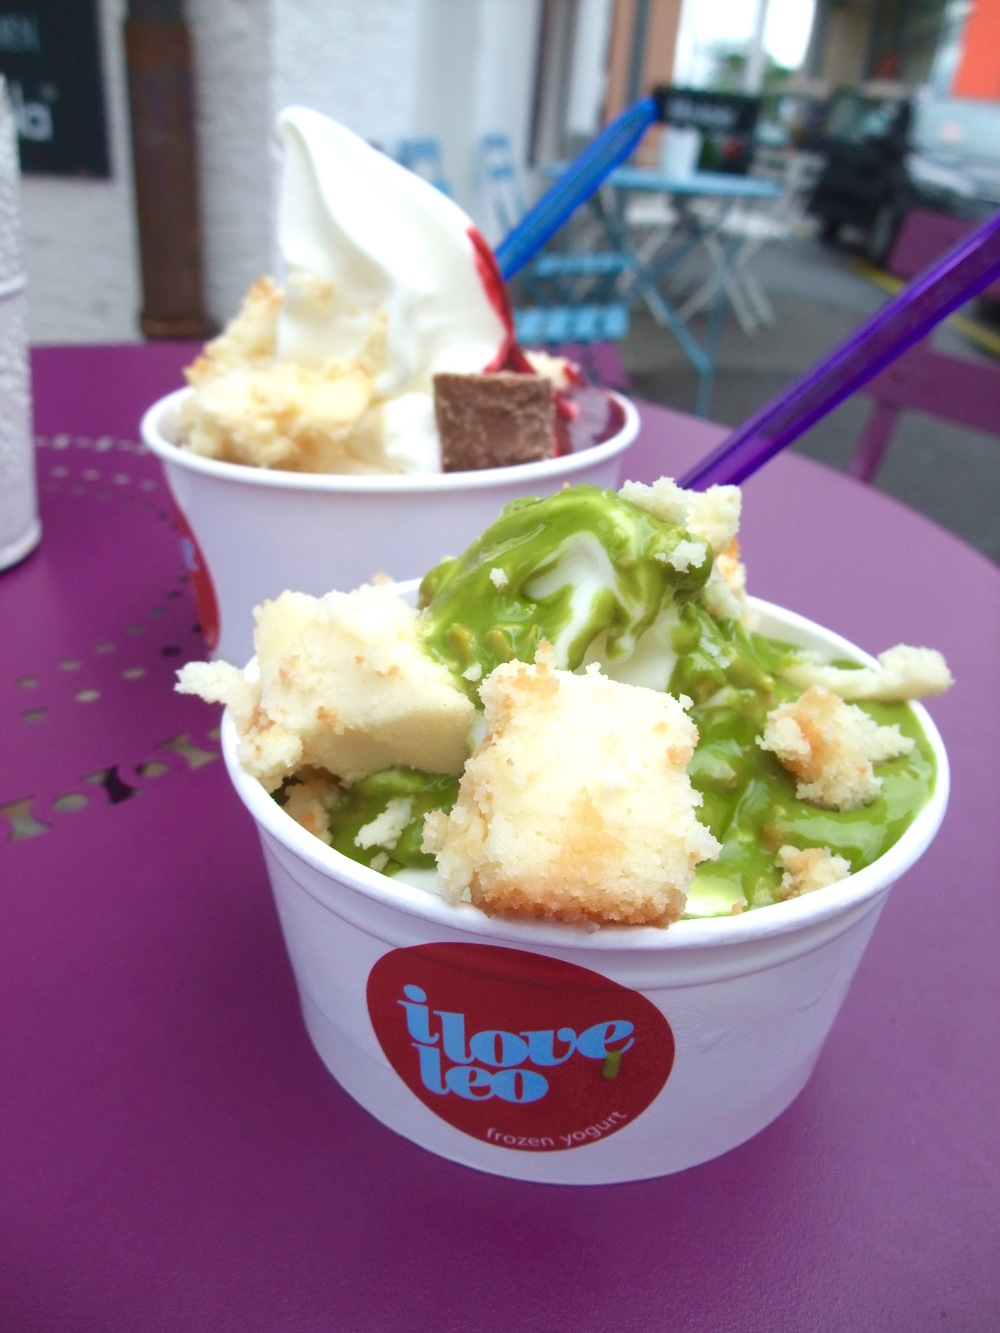 Frozen yogurt from I Love Leo